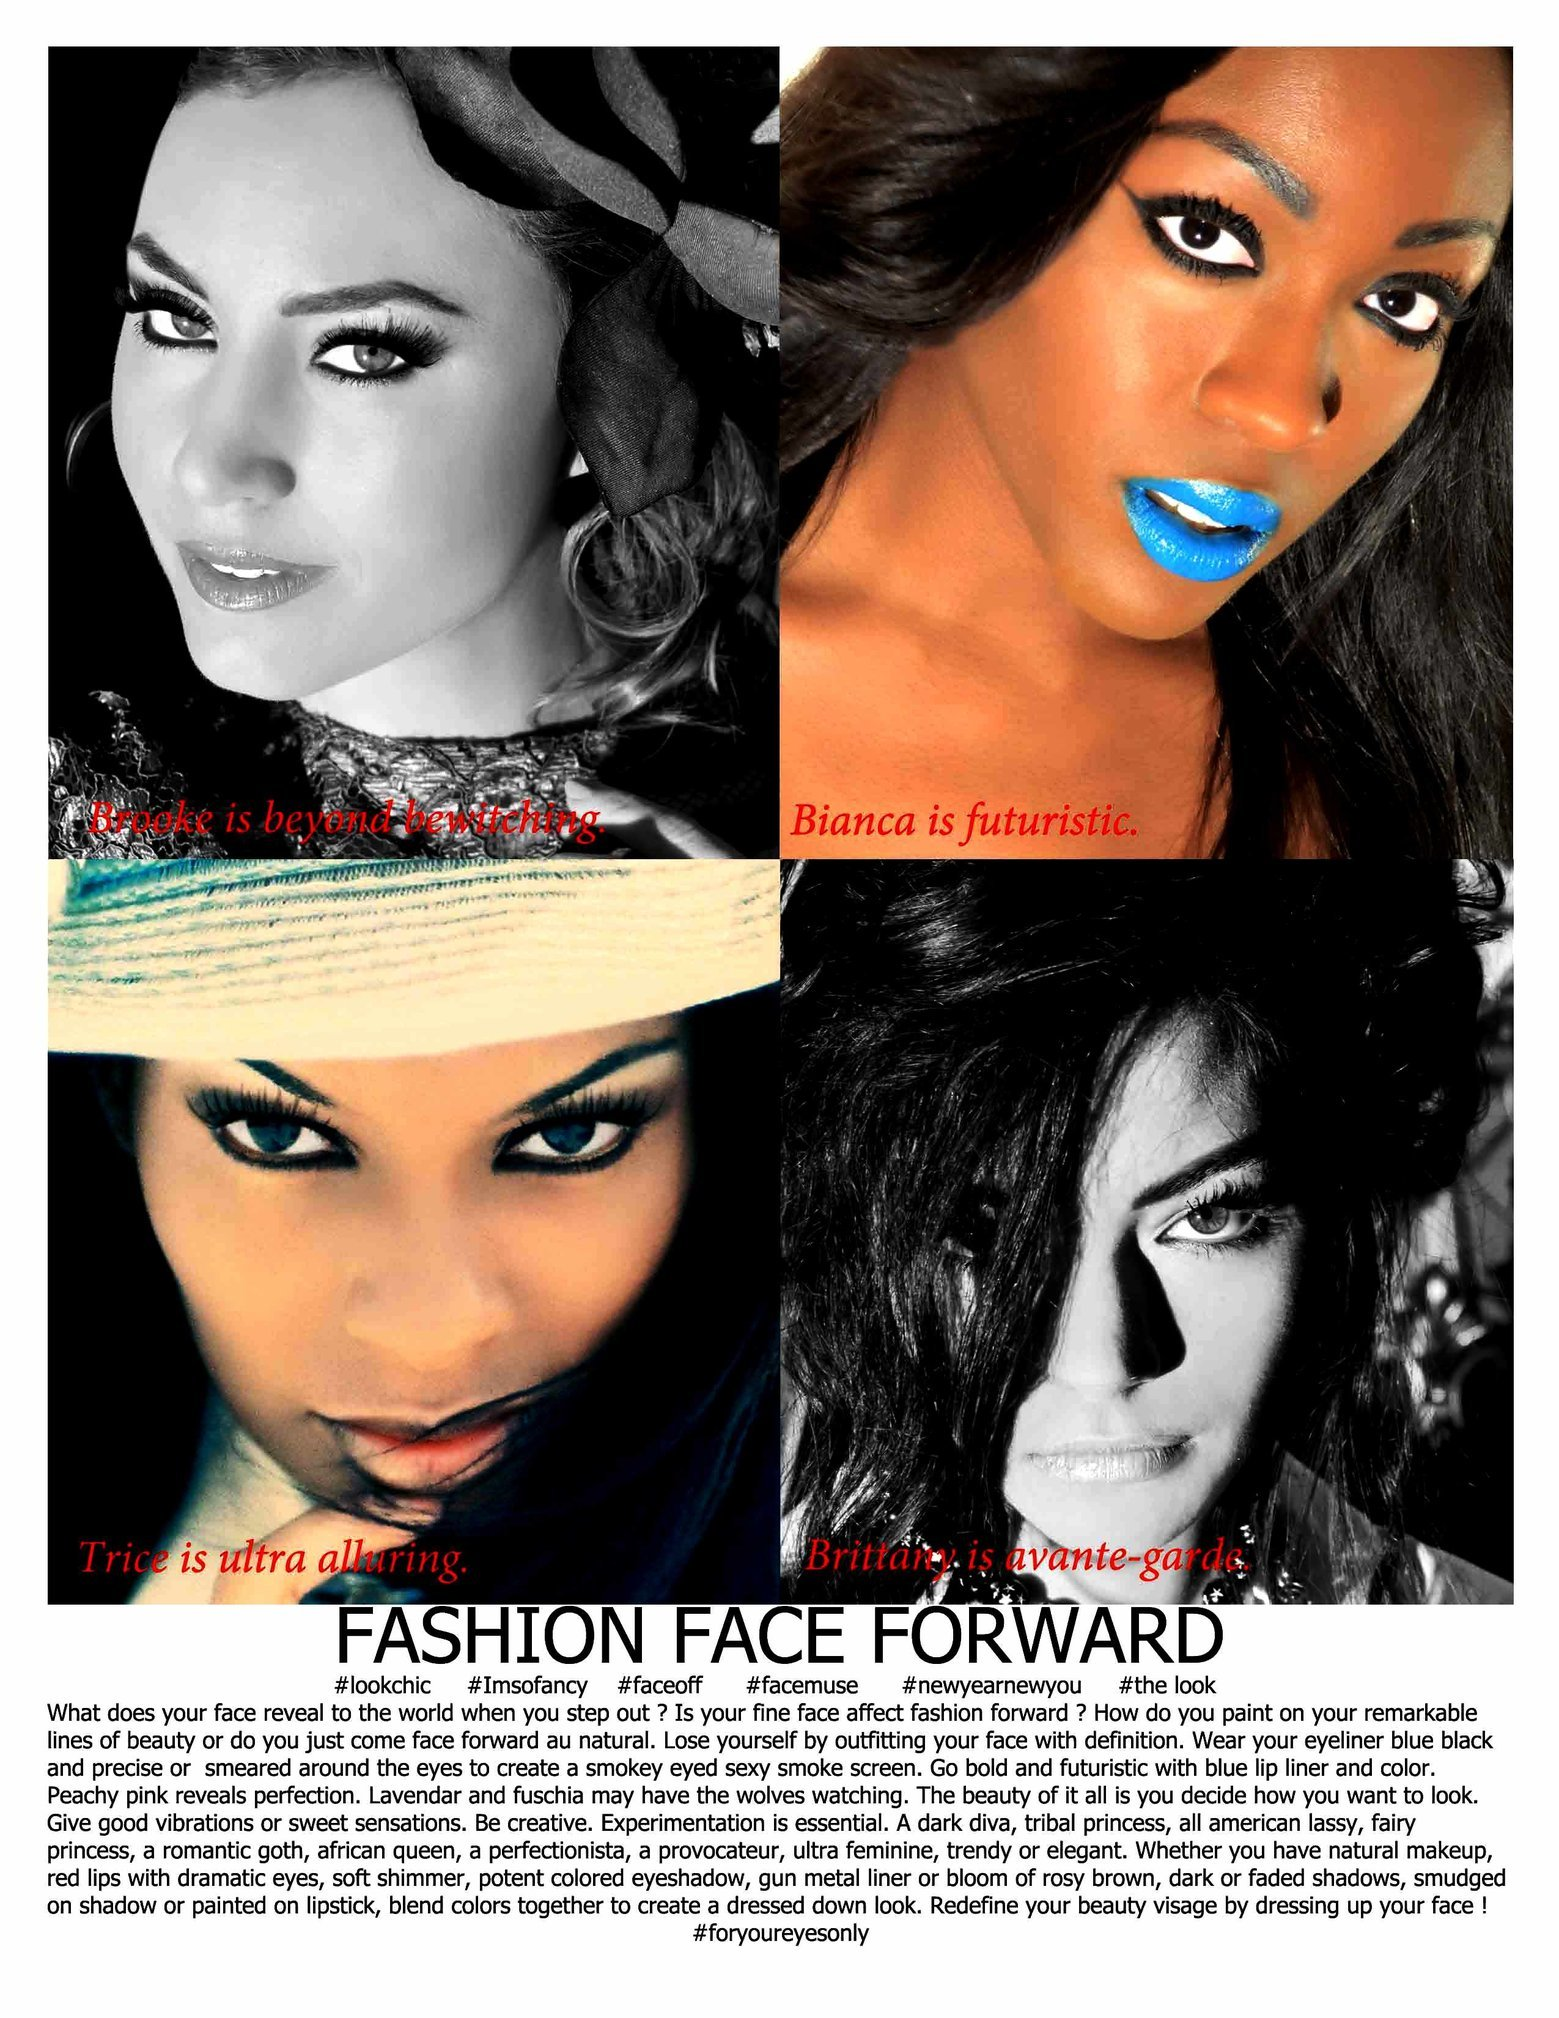 FASHION FEATURE for RED-ZONE magazine.